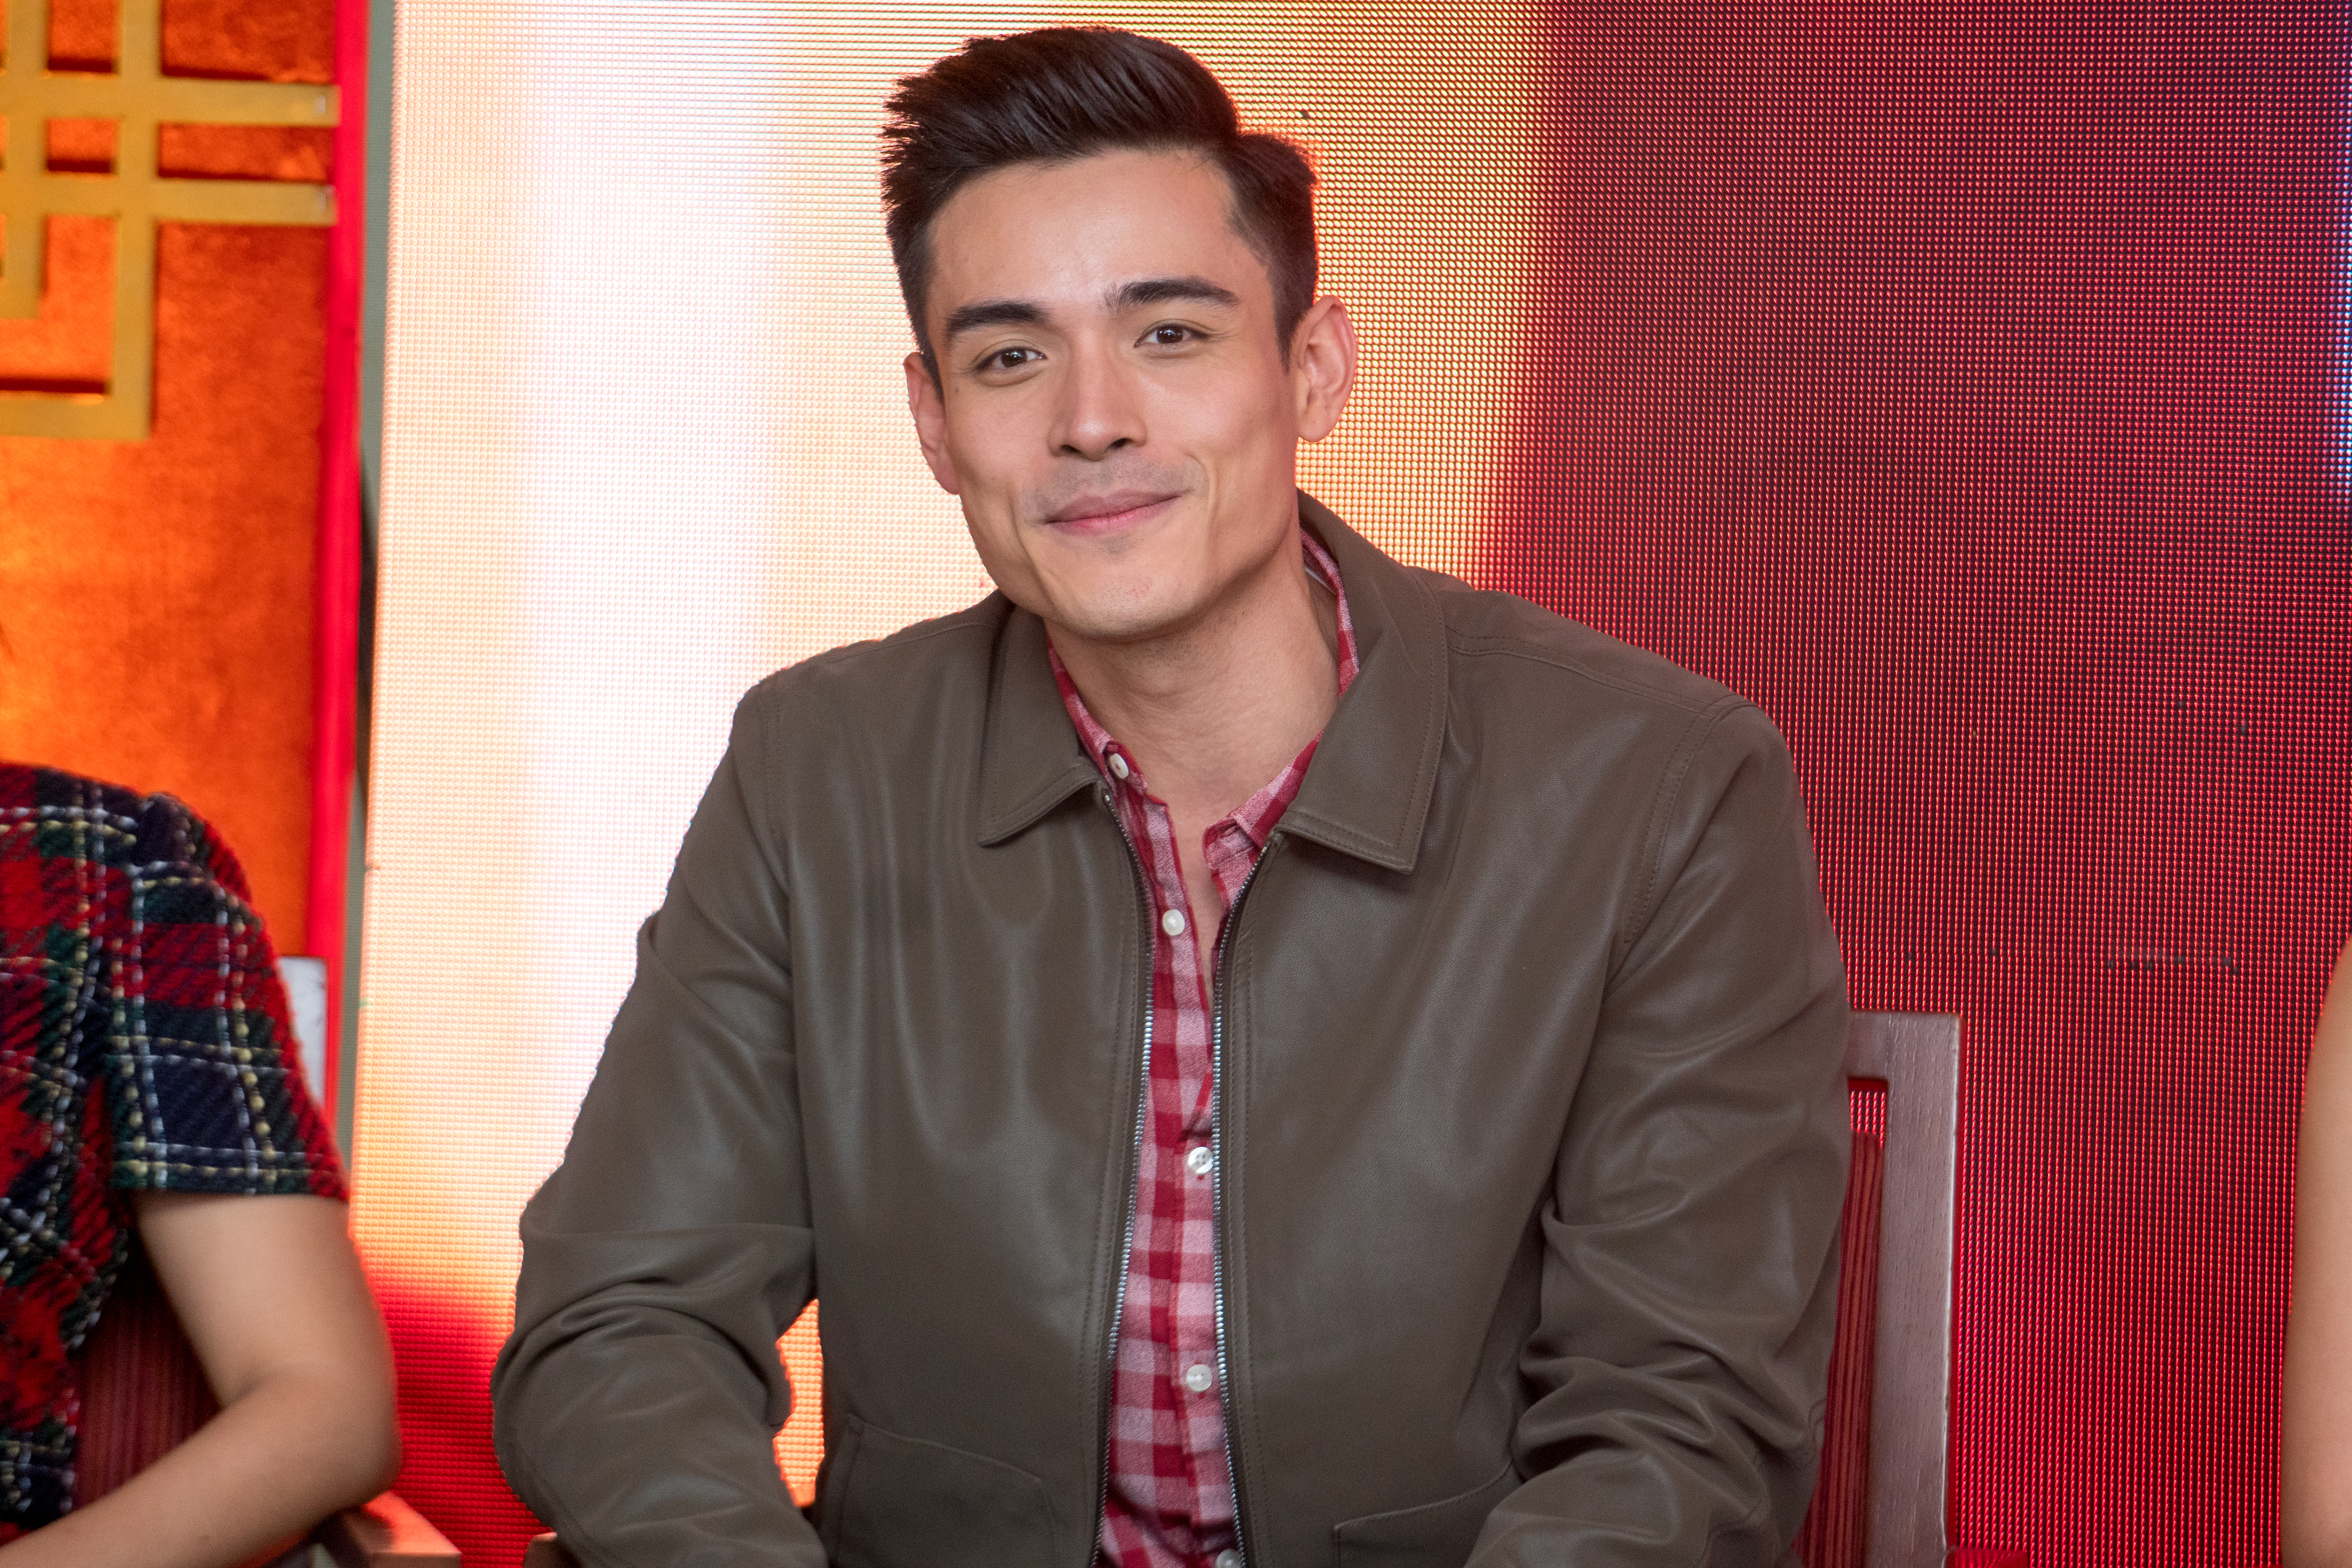 MAN IN THE MIDDLE. Xian Lim is David Chow, a Filipino-Chinese young man raised in Singapore who marries Dana and later falls for Jia.